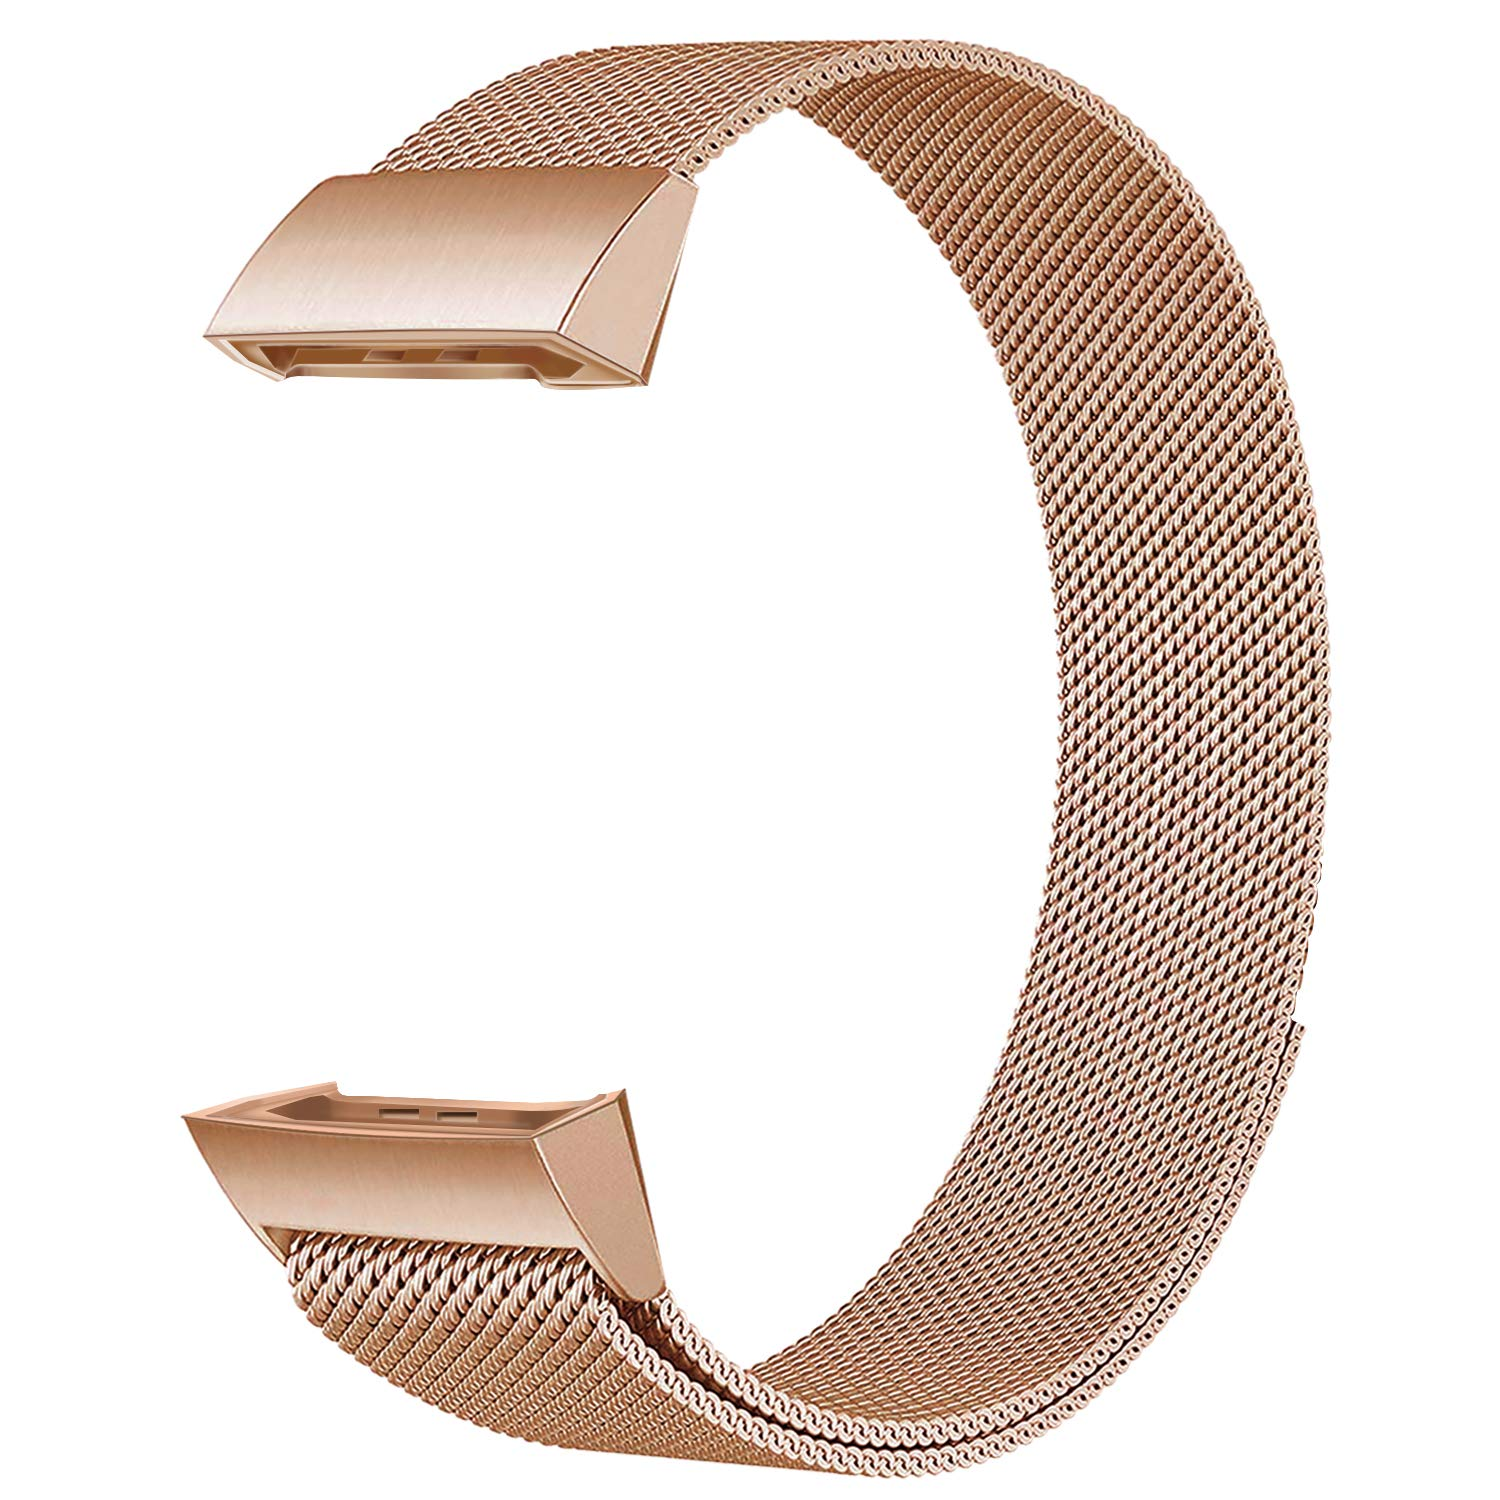 Adjustable Stainless Steel Metal Bracelet Strap for Fitbit Charge 2 HR Fitness Tracker Men Women Wristbands Mugust Replacement Bands Compatible with Fitbit Charge 2 Bands